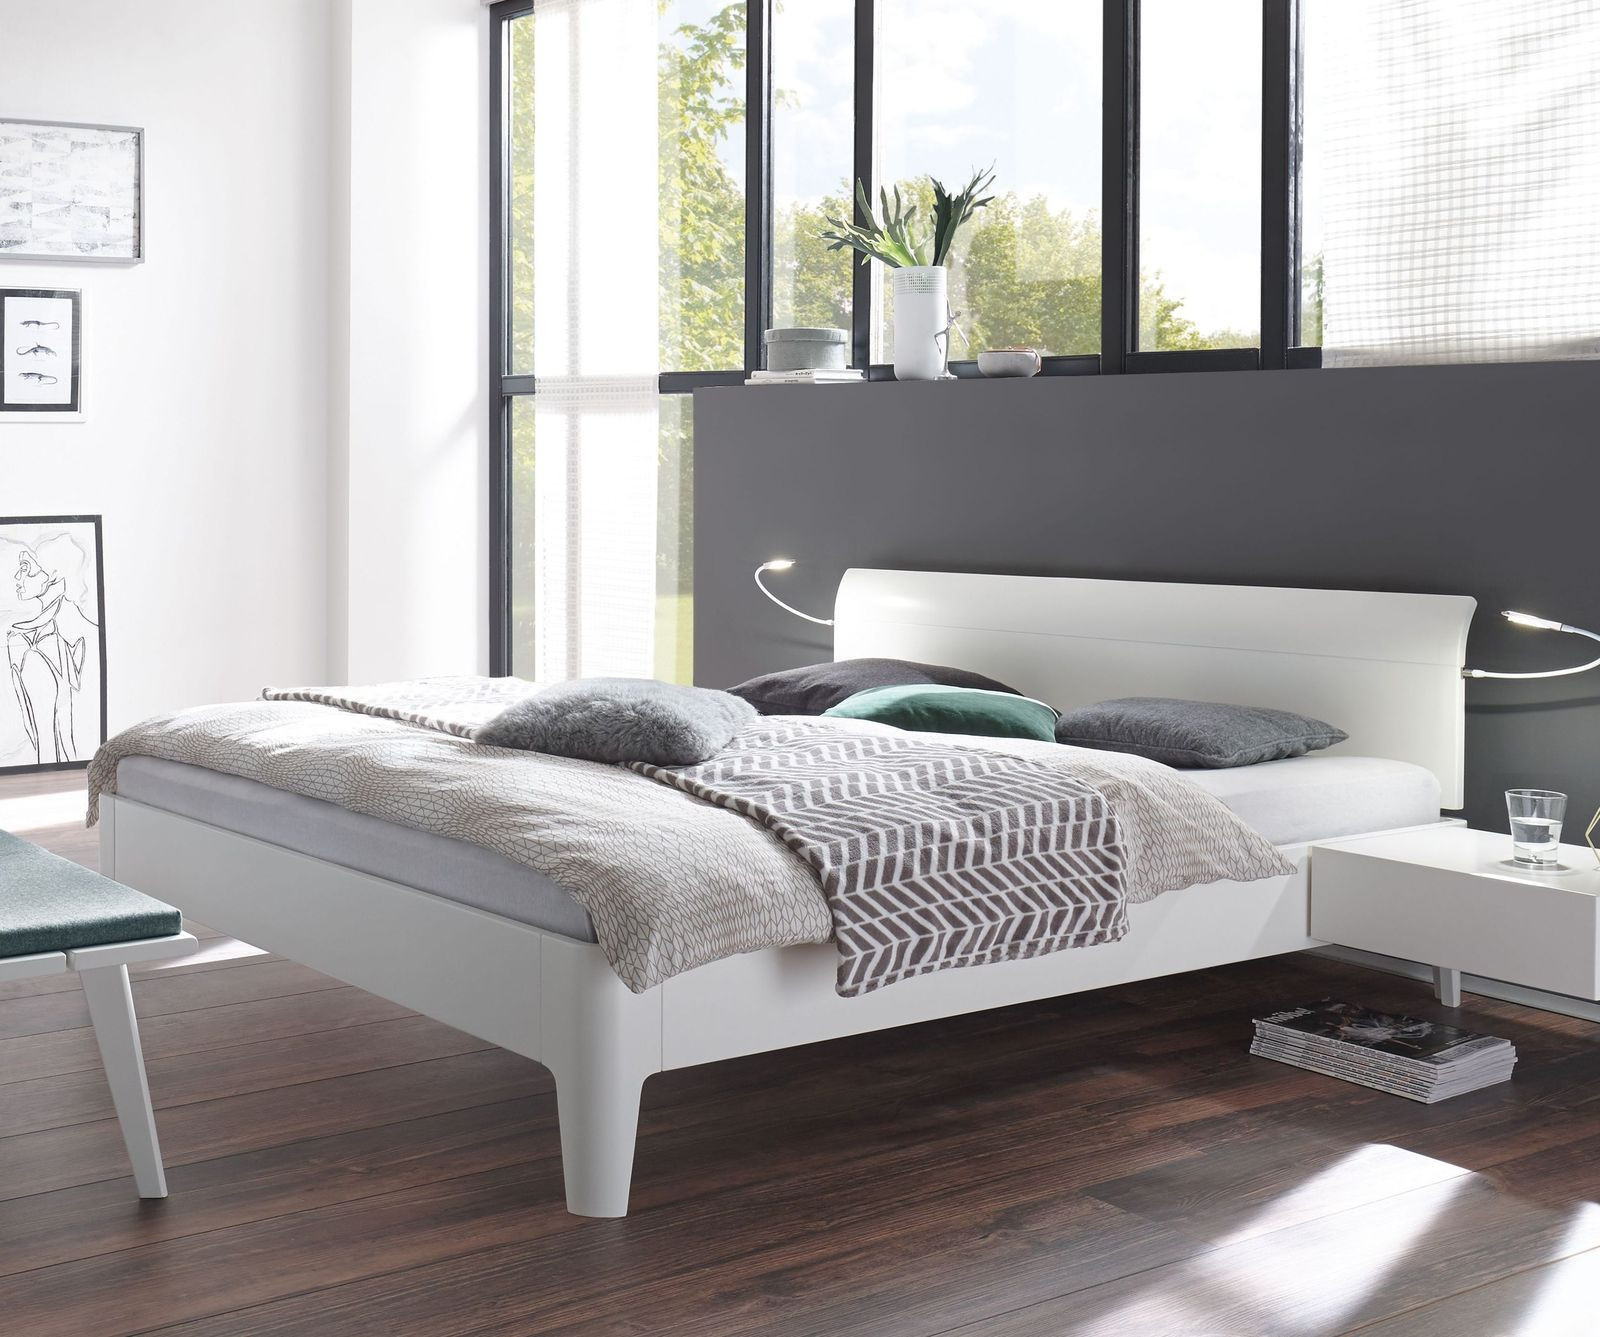 Bett Modern Design Bett Narva | Bed Design, Contemporary Bedroom Furniture ...